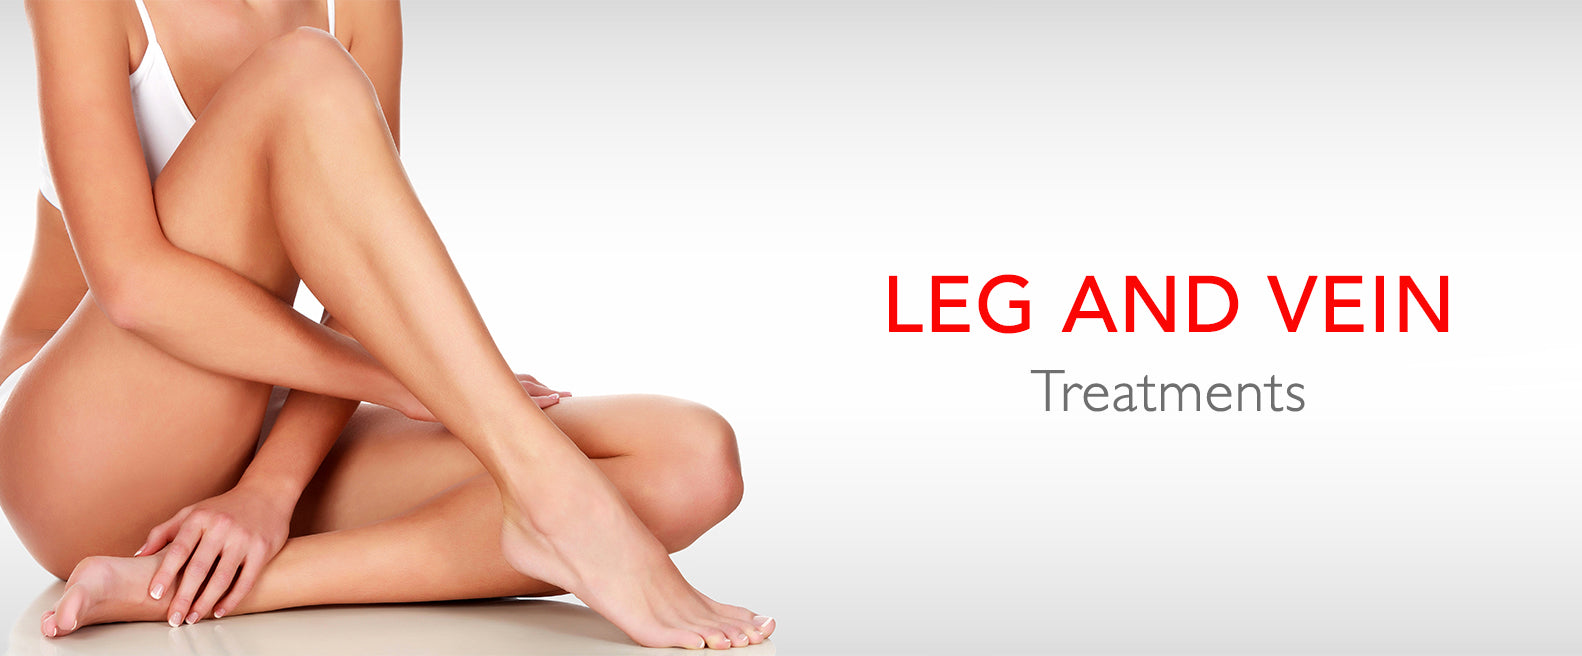 Leg and Vein Treatments